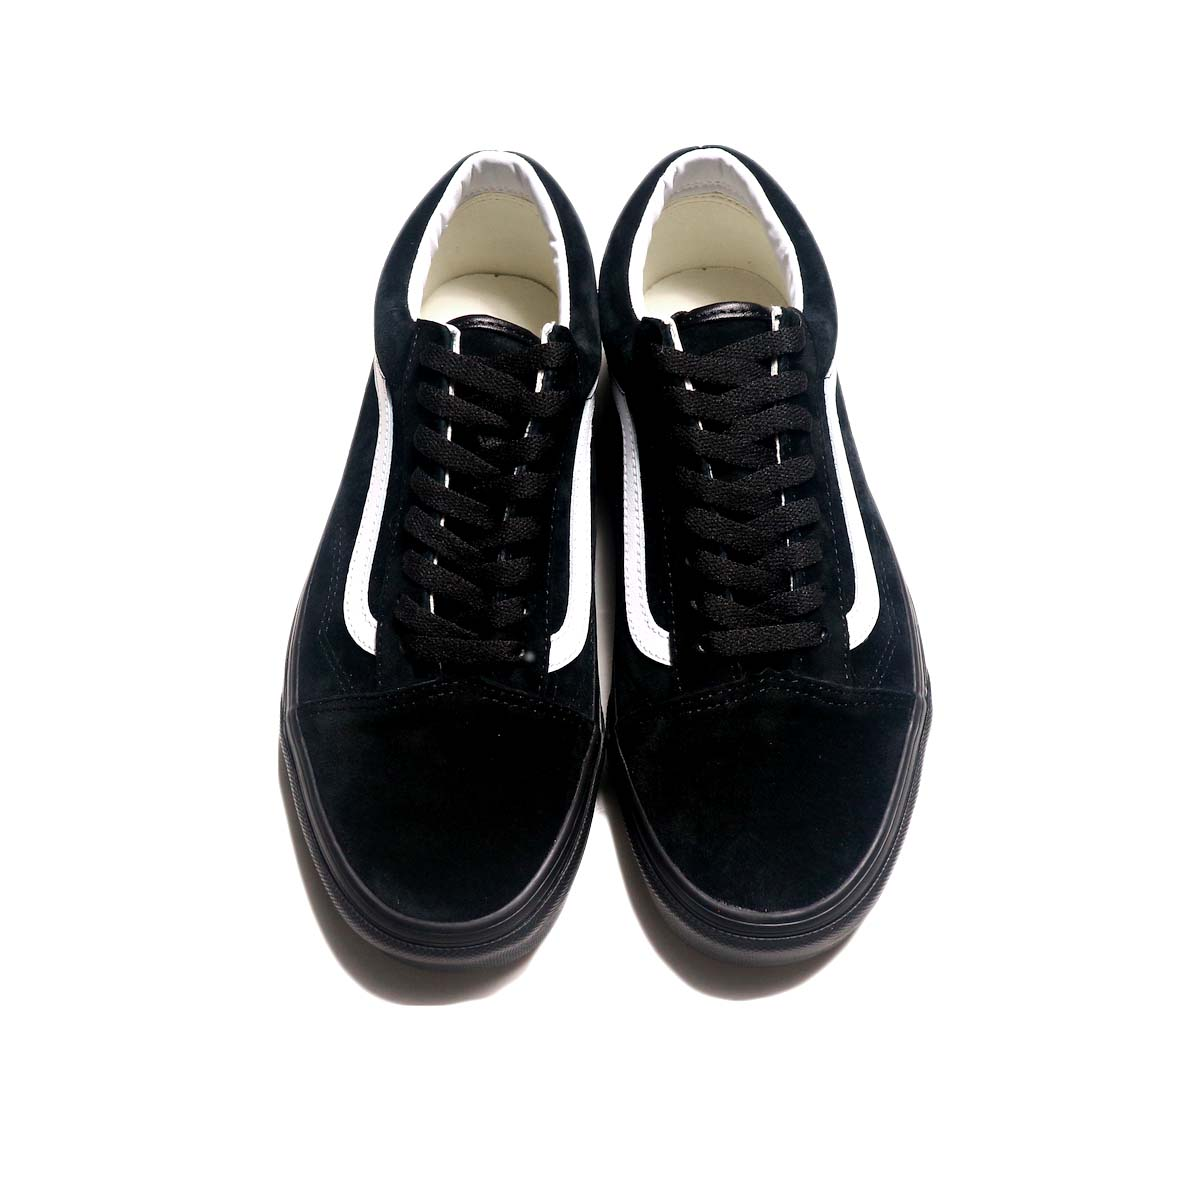 VANS / OLD SKOOL (Piq Suede) (Black) 正面